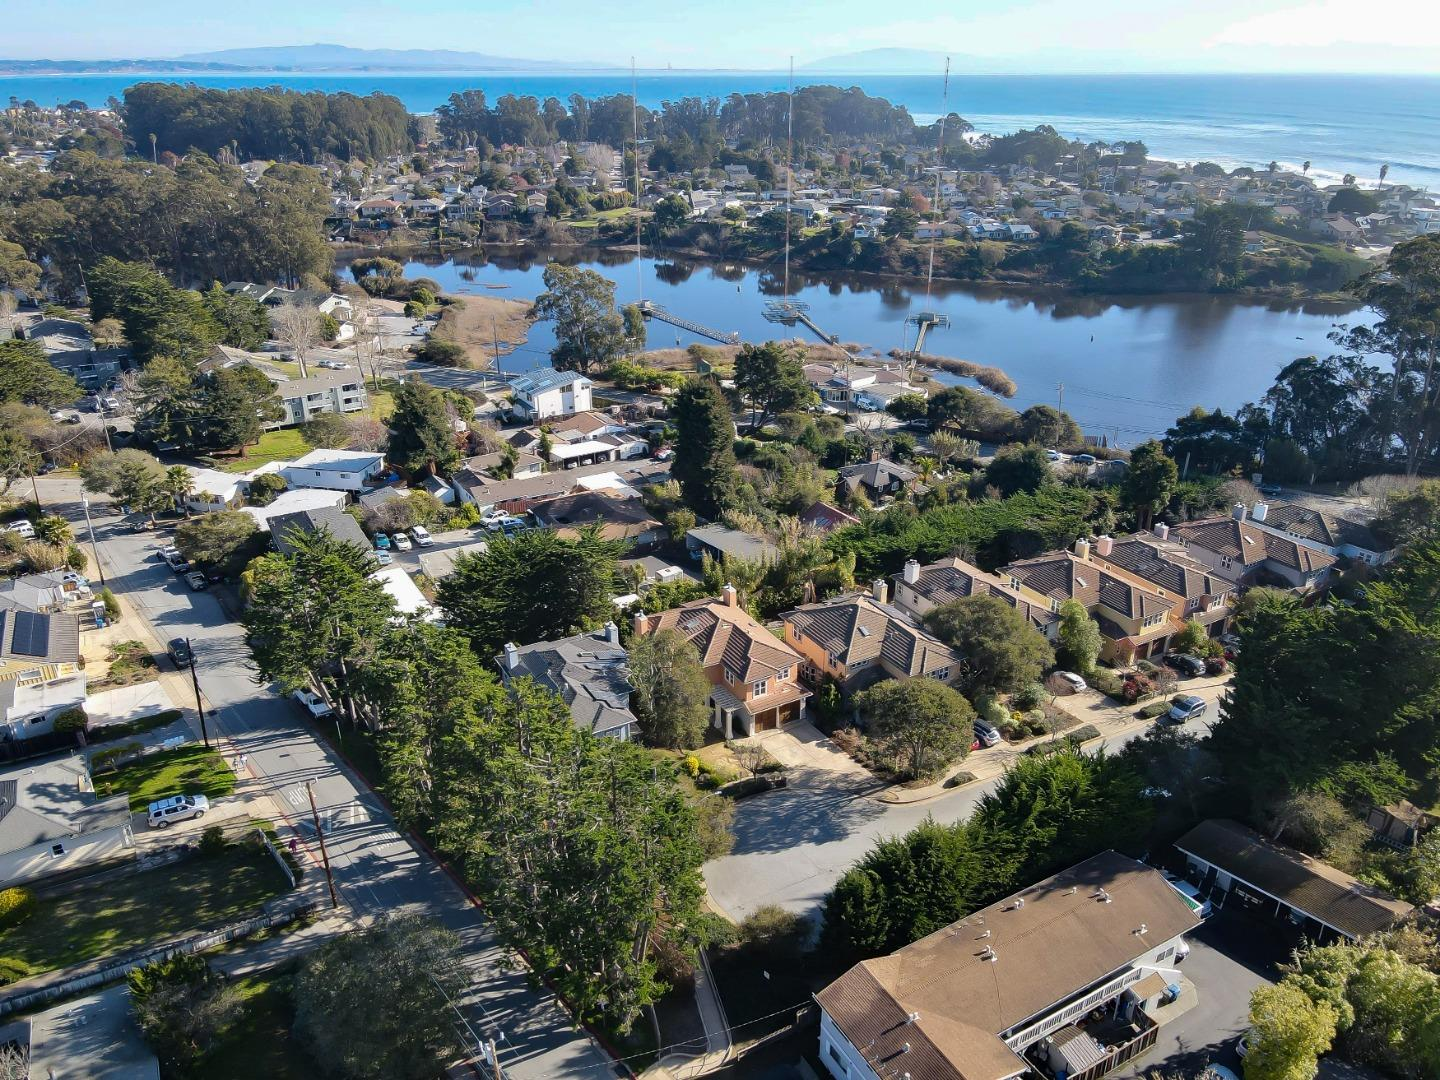 Like-New Beach Home! Just a 3 minute walk to beach and surf on the Corcoran Lagoon path, this well-built home with open kitchen-living area features all-new kitchen with Granite island, full wall glass tile backsplash plus all-new custom kitchen cabinets and upscale appliances including subzero fridge. And don't miss the large walk-in pantry and separate walk-in wine closet! The open living dining area with fireplace is open yet cozy with double French Doors and windows opening to a private rear yard finished with pavers and a hot tub. A sweeping hardwood stairway with large, usable landing area opens to the Master Suite with vaulted ceilings, walk-in closet and gas fireplace. The bath has an oversized tub, and walk-in marble shower. There are two more bedrooms and a full bath upstairs plus separate laundry. And a two car garage too!  All conveniently located on a private cul-de-sac in easy walking or biking distance to Starbucks, restaurants and other great beach getaways. Come enjoy.